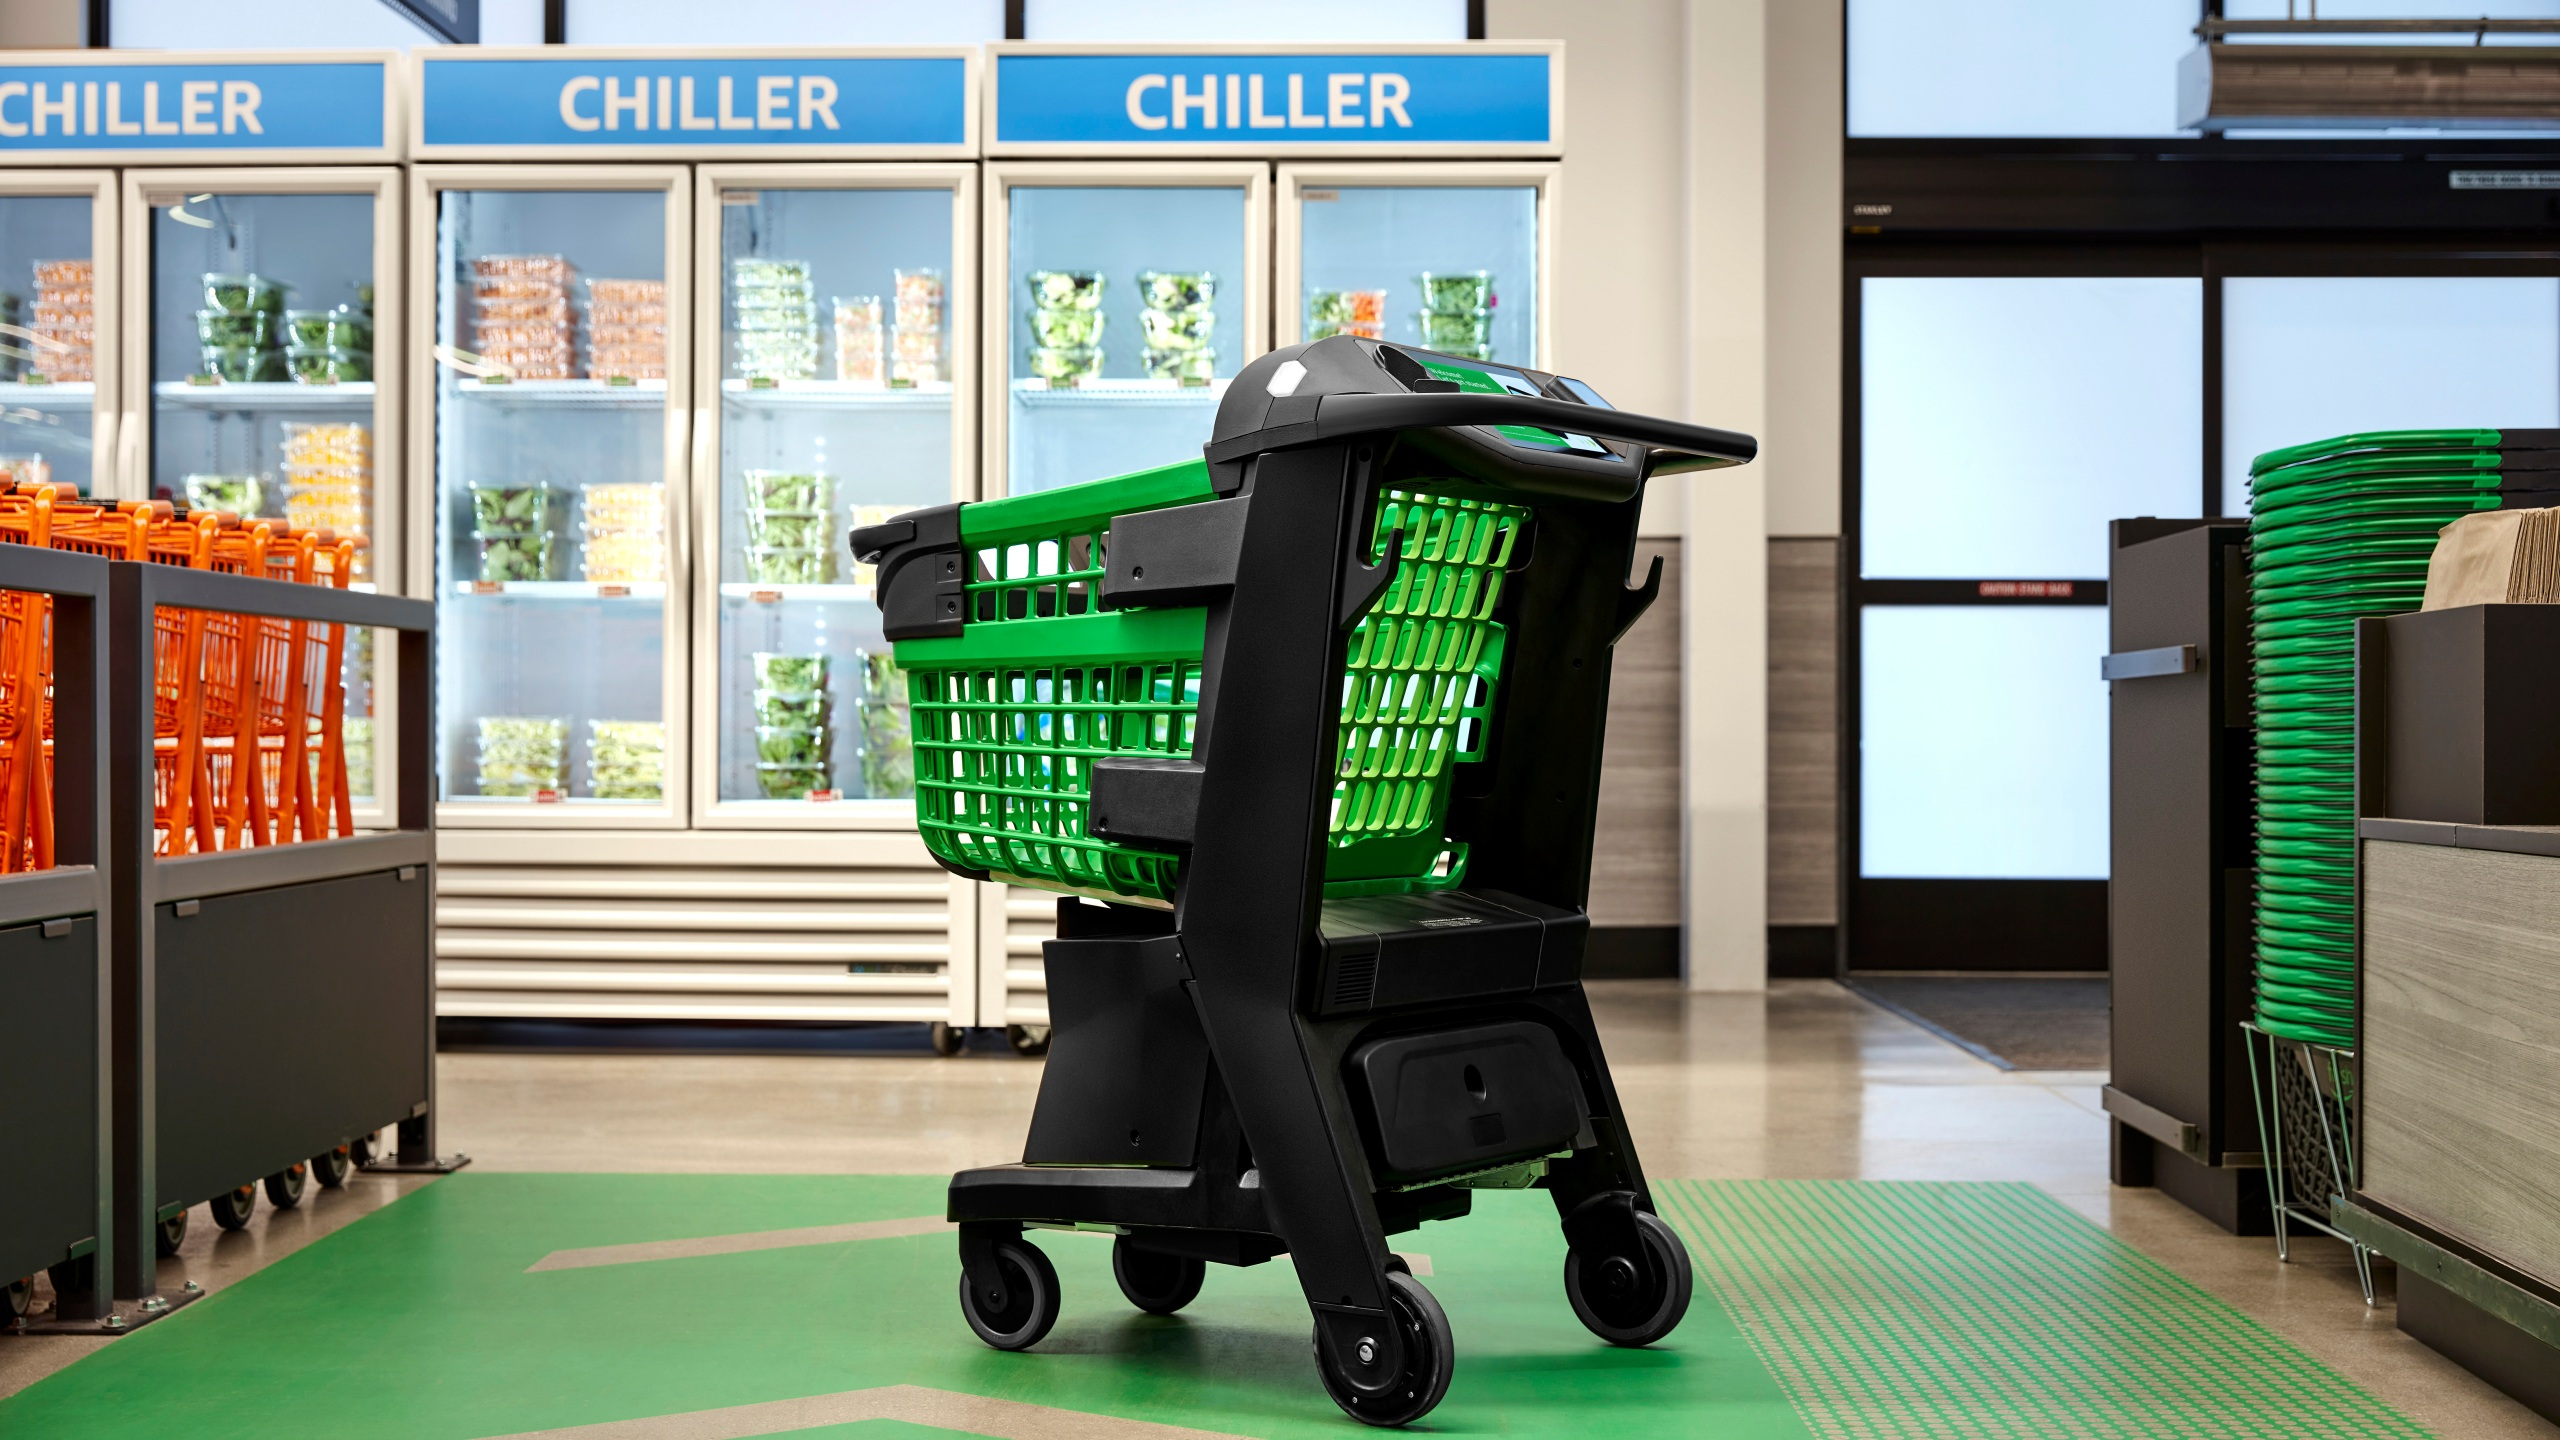 In a photo provided by Amazon, the company's smart shopping cart is seen in spring 2020 in Los Angeles. The cart, which Amazon unveiled on July 14, 2020, uses cameras, sensors and a scale to automatically detect what shoppers drop in. It keeps a tally and then charges their Amazon account when they leave the store. No cashier is needed. (Amazon via AP)